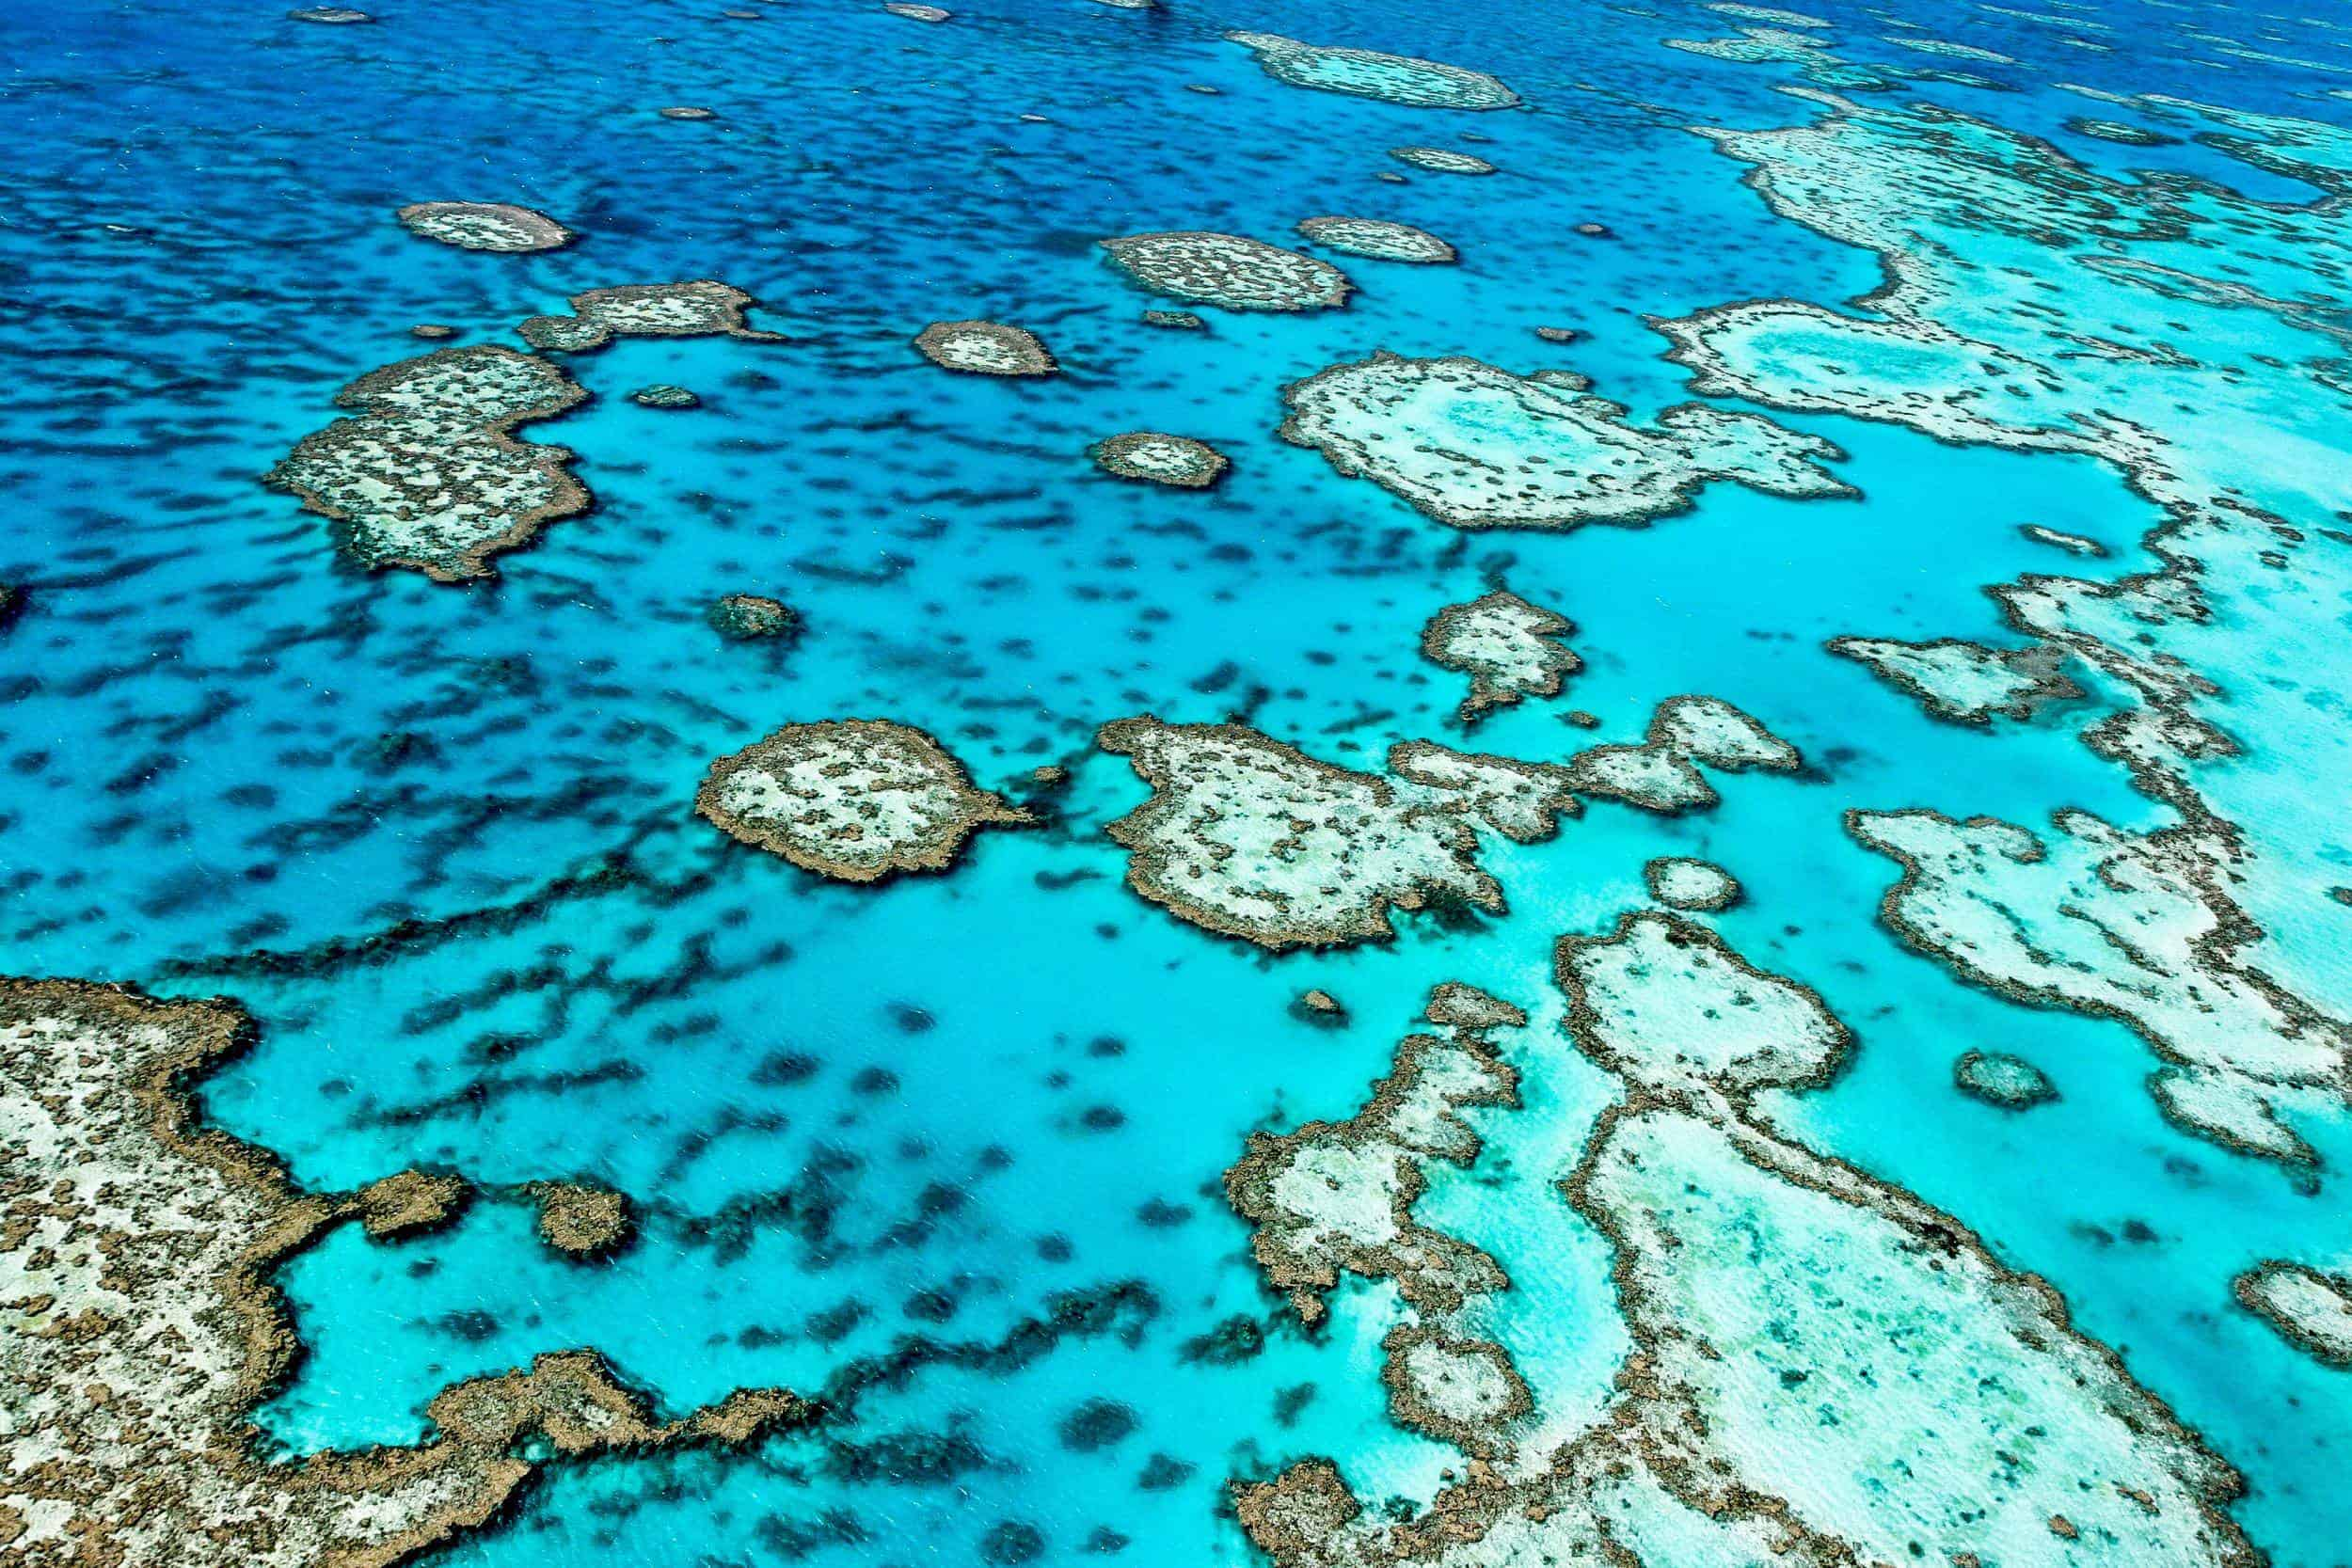 Det mægtige Great Barrier Reef i Australien